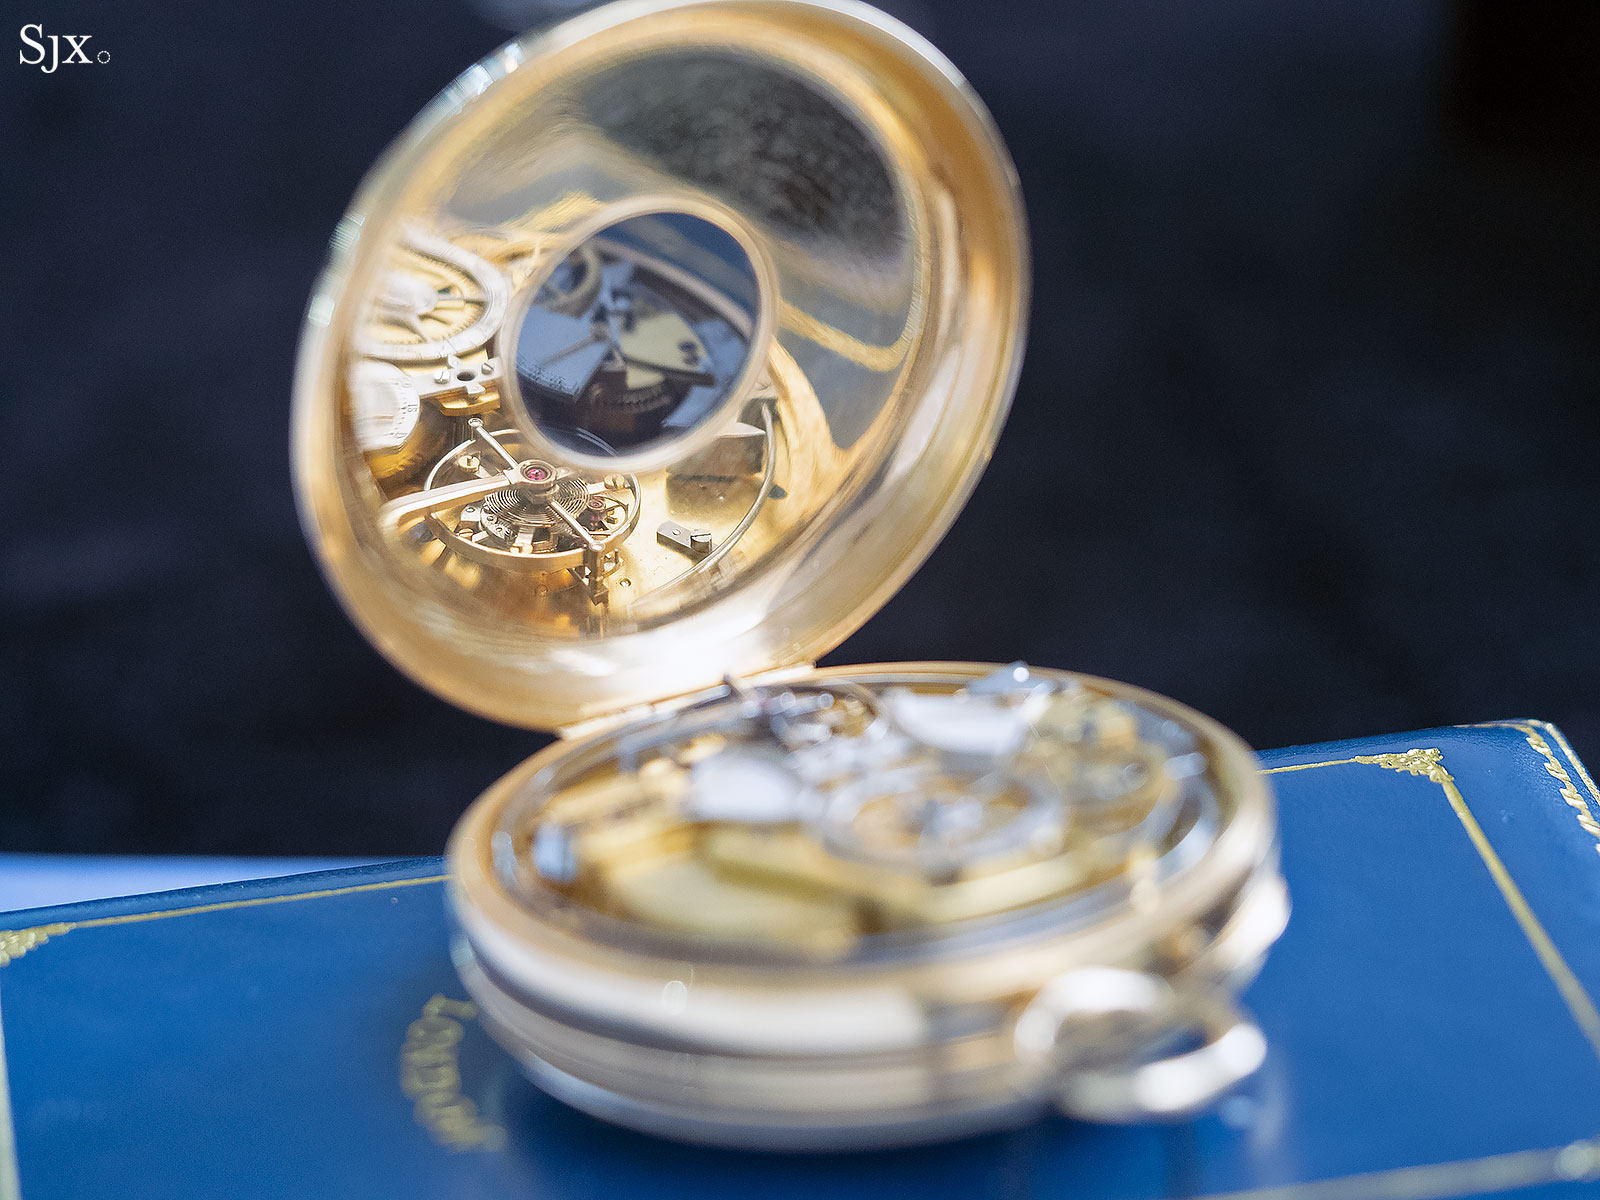 George Daniels Grand Complication pocket watch 10